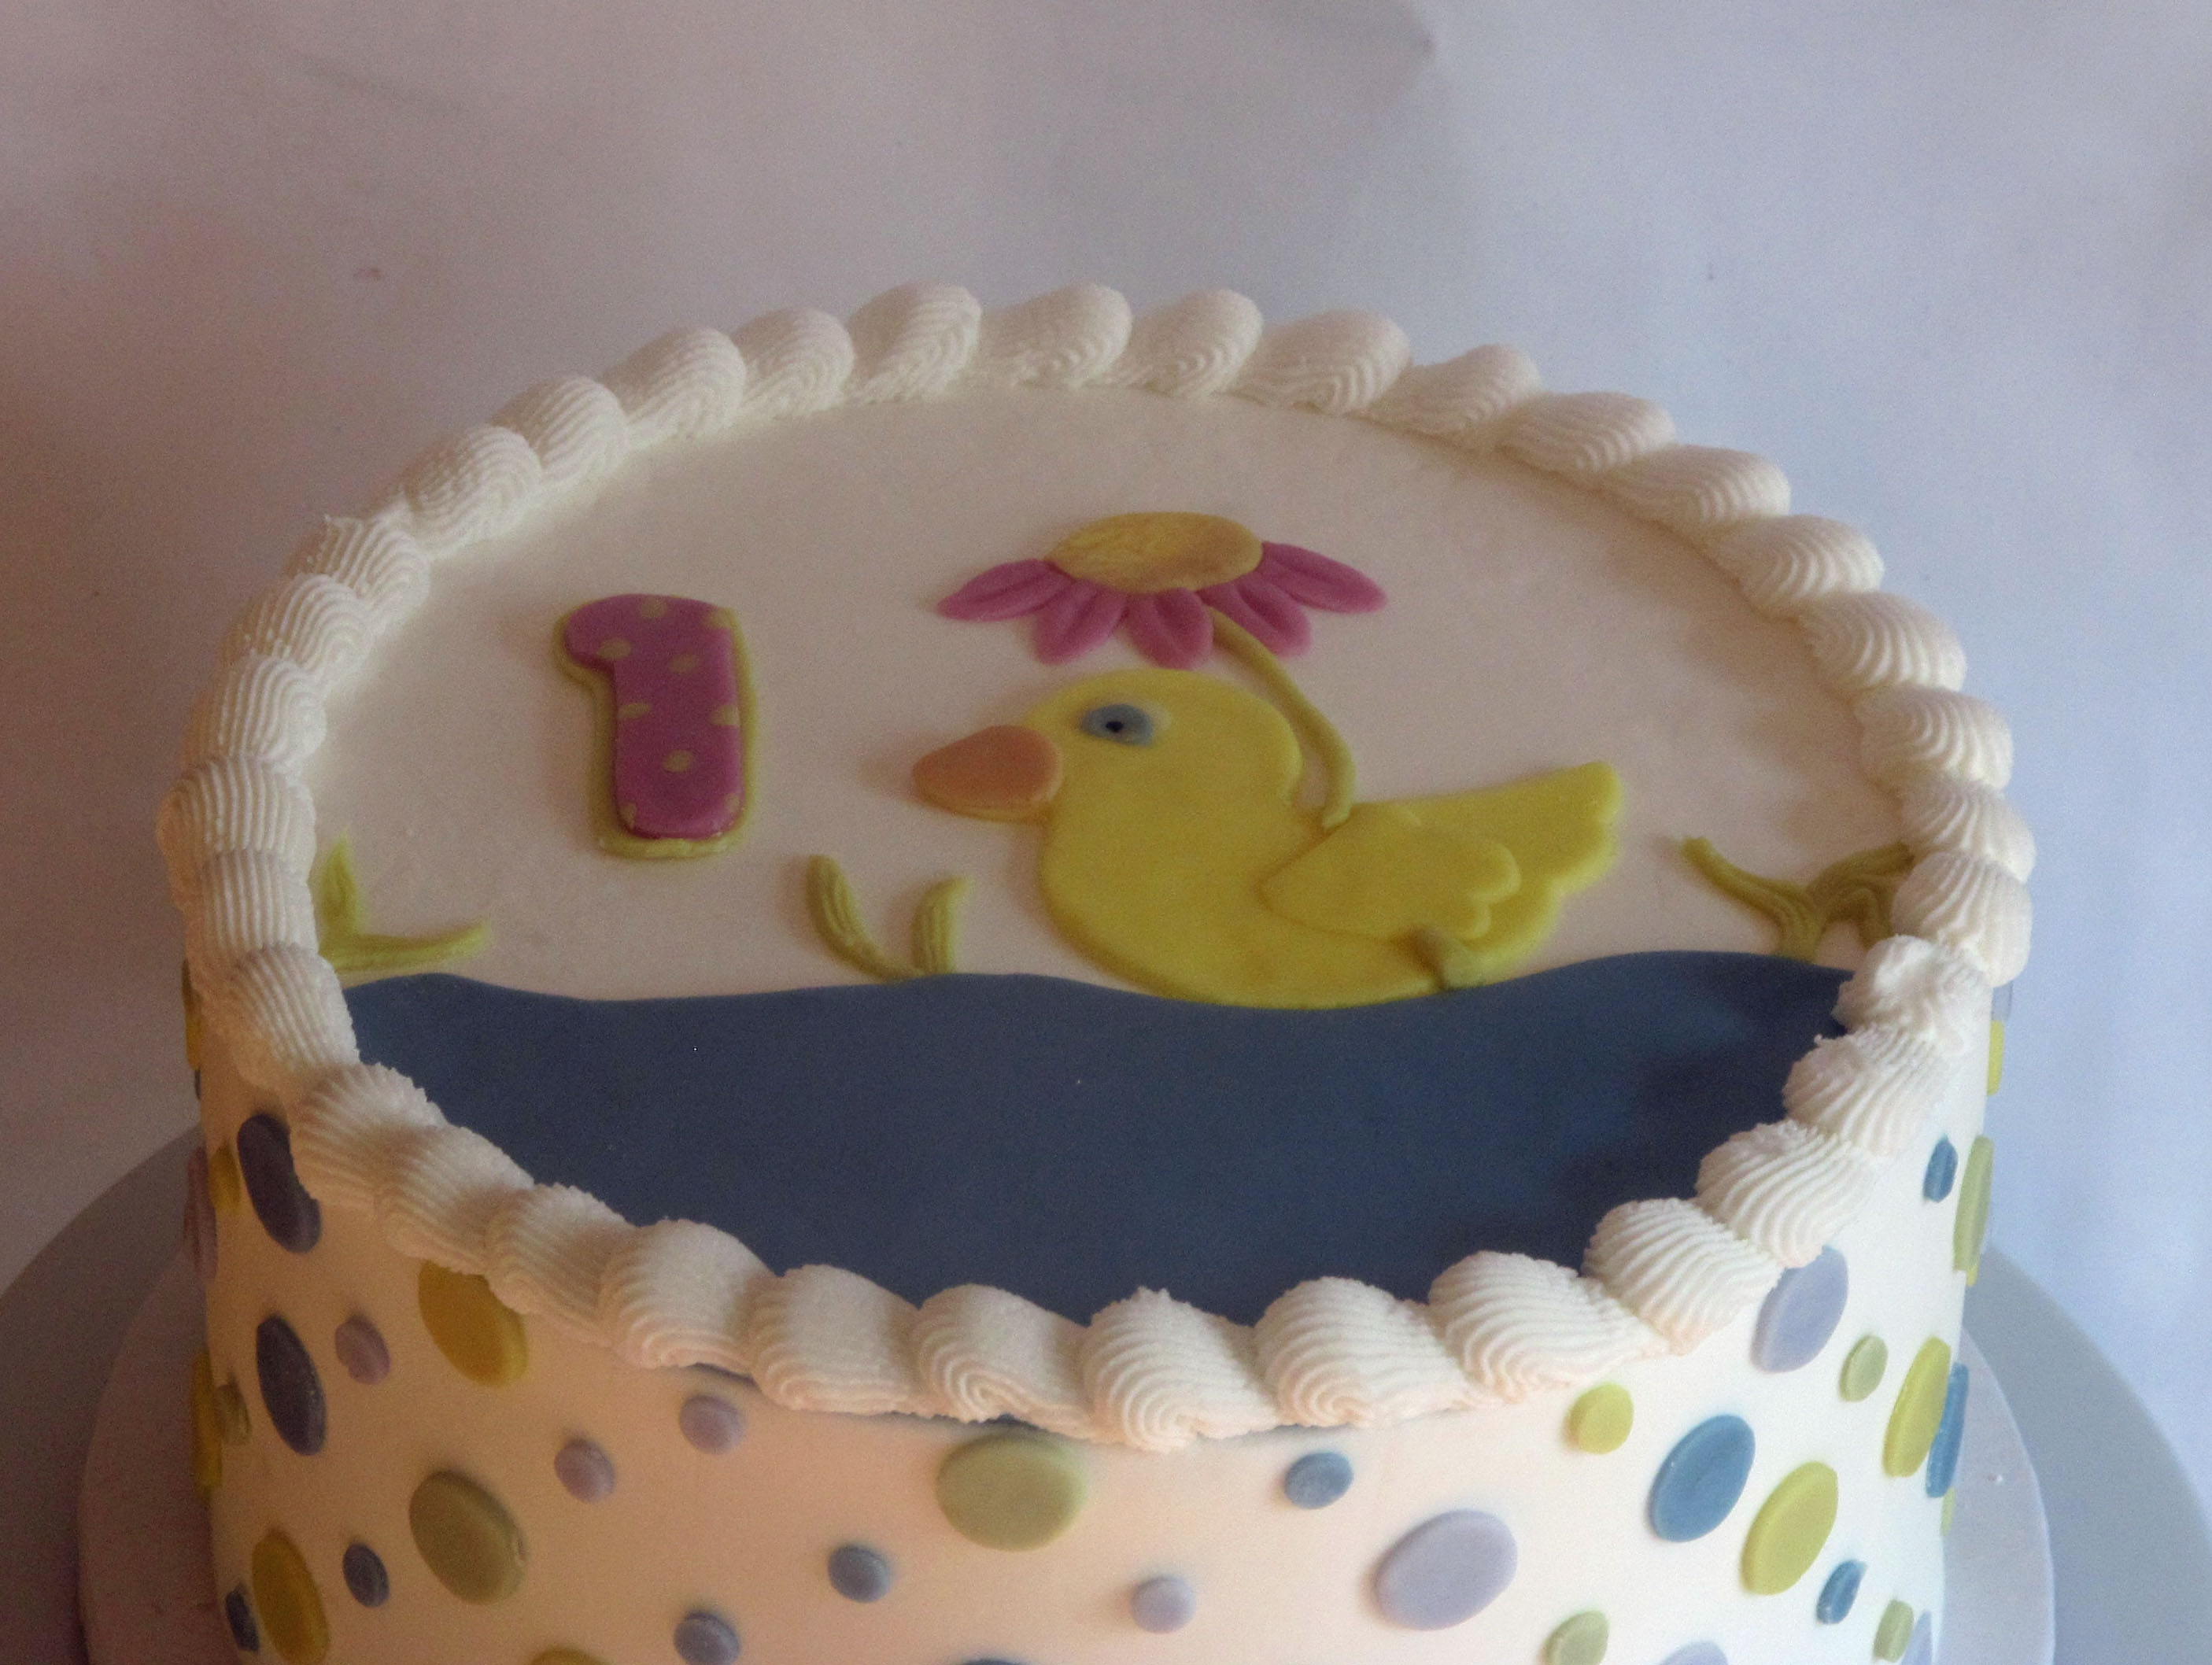 Natural Food Coloring Birthday Cake - CakeCentral.com